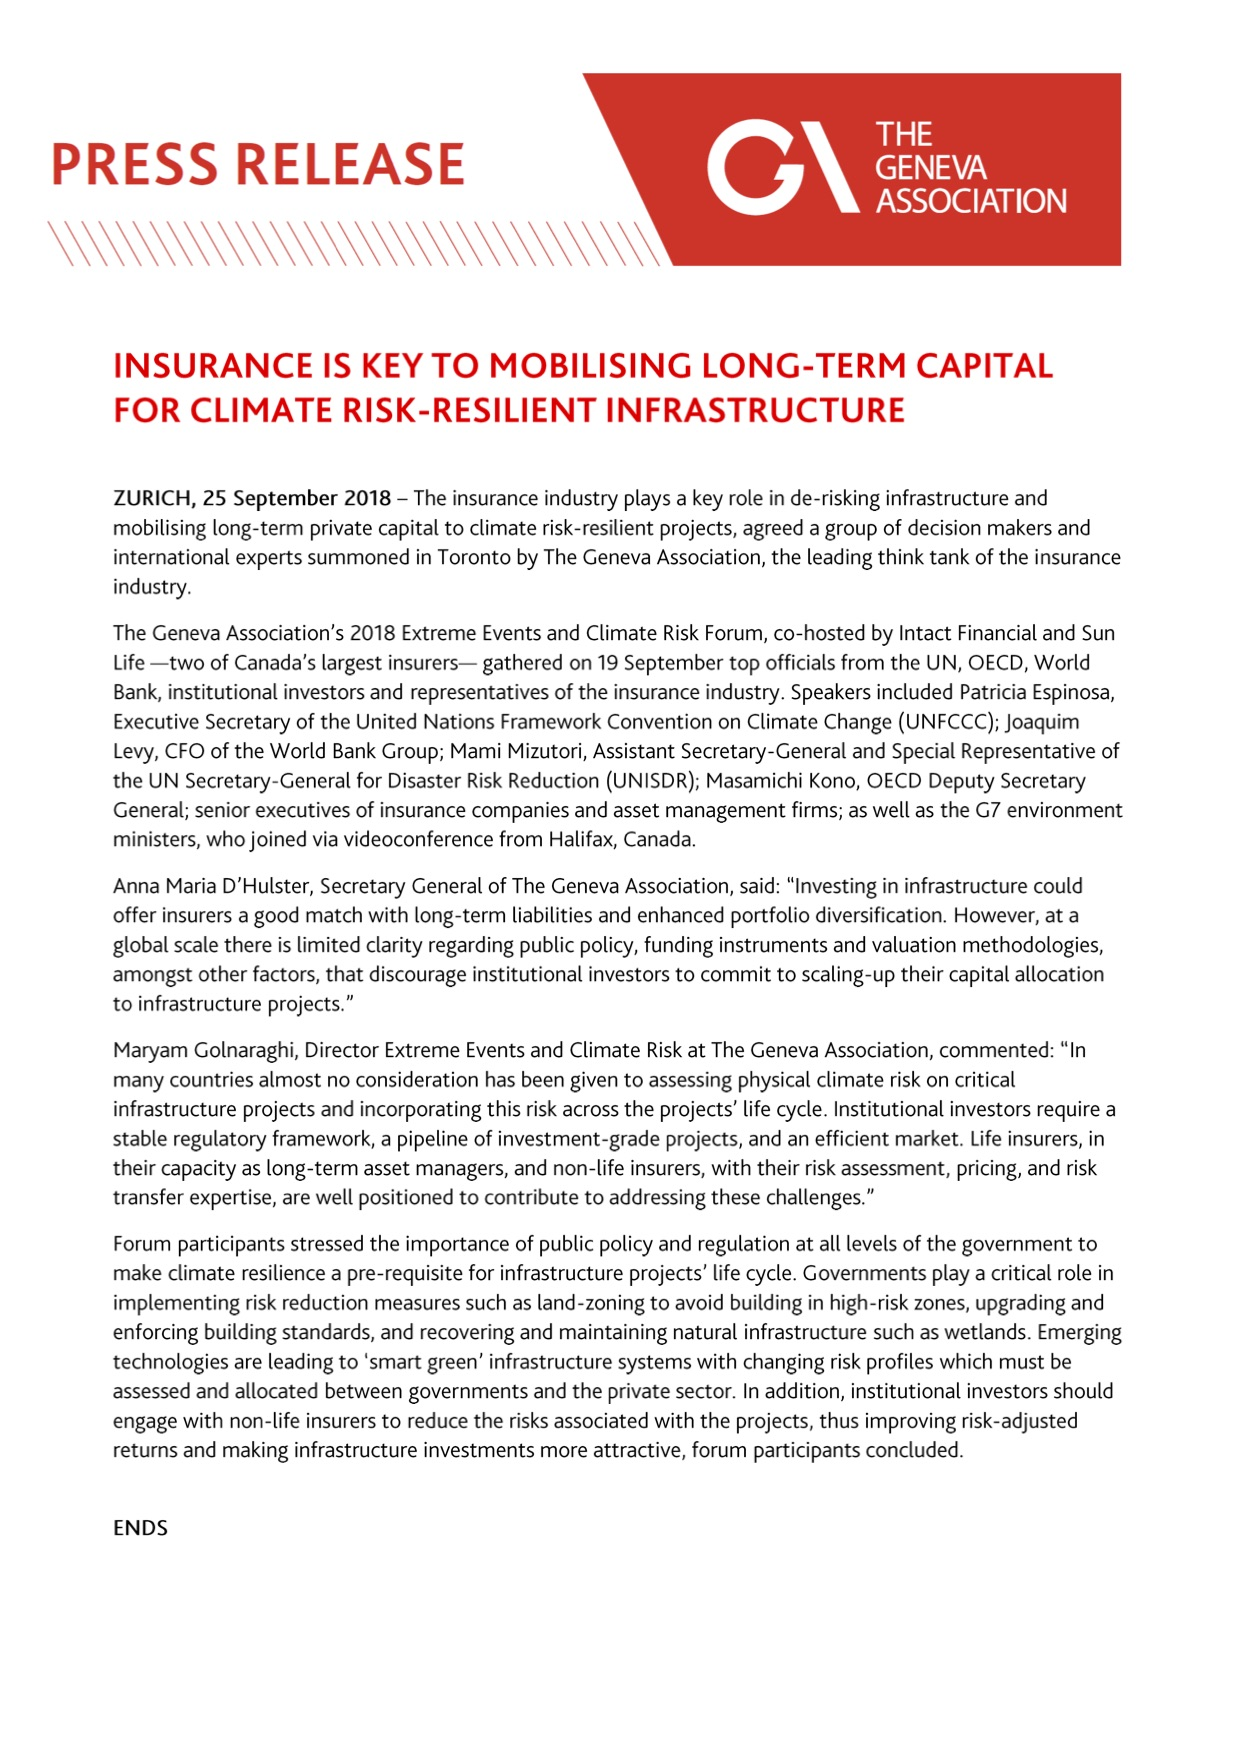 Insurance is key to mobilising long-term capital for climate risk-resilient infrastructure